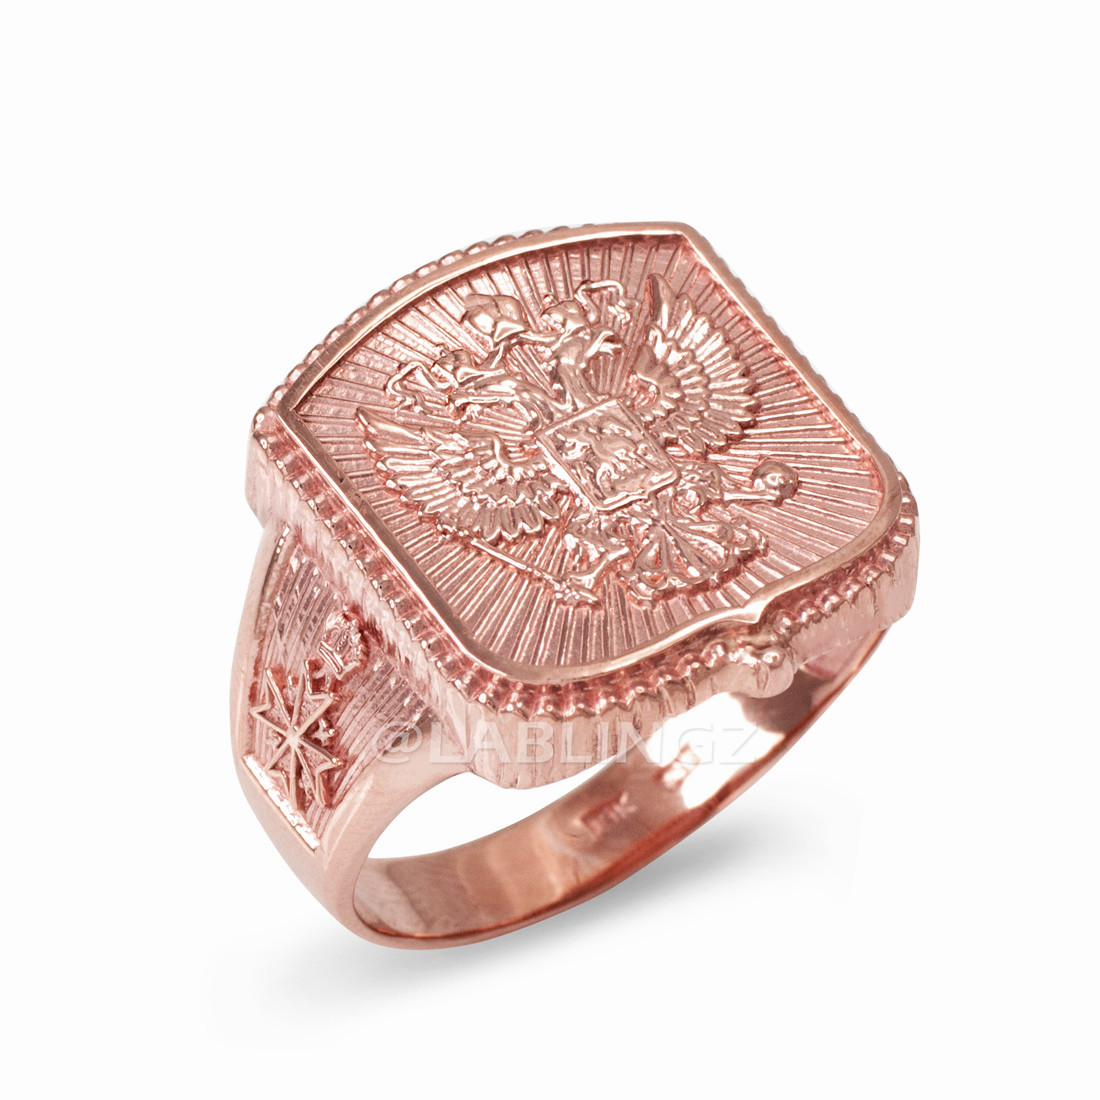 Rose Gold Russian Imperial Crest Double-headed Eagle Mens Orthodox Ring